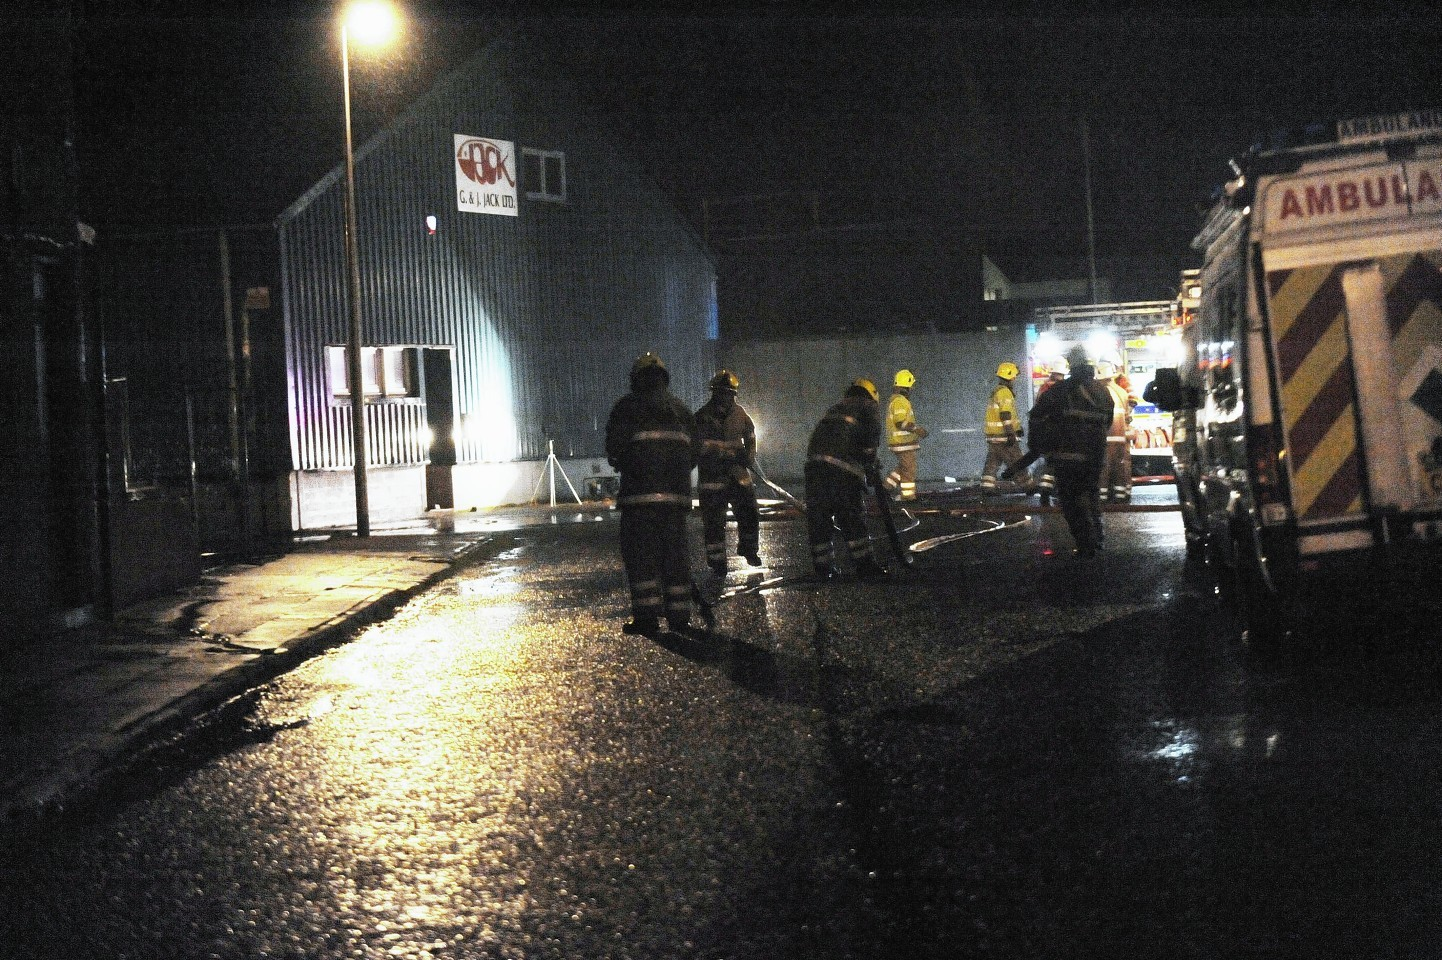 Crews tackled the blaze yesterday evening